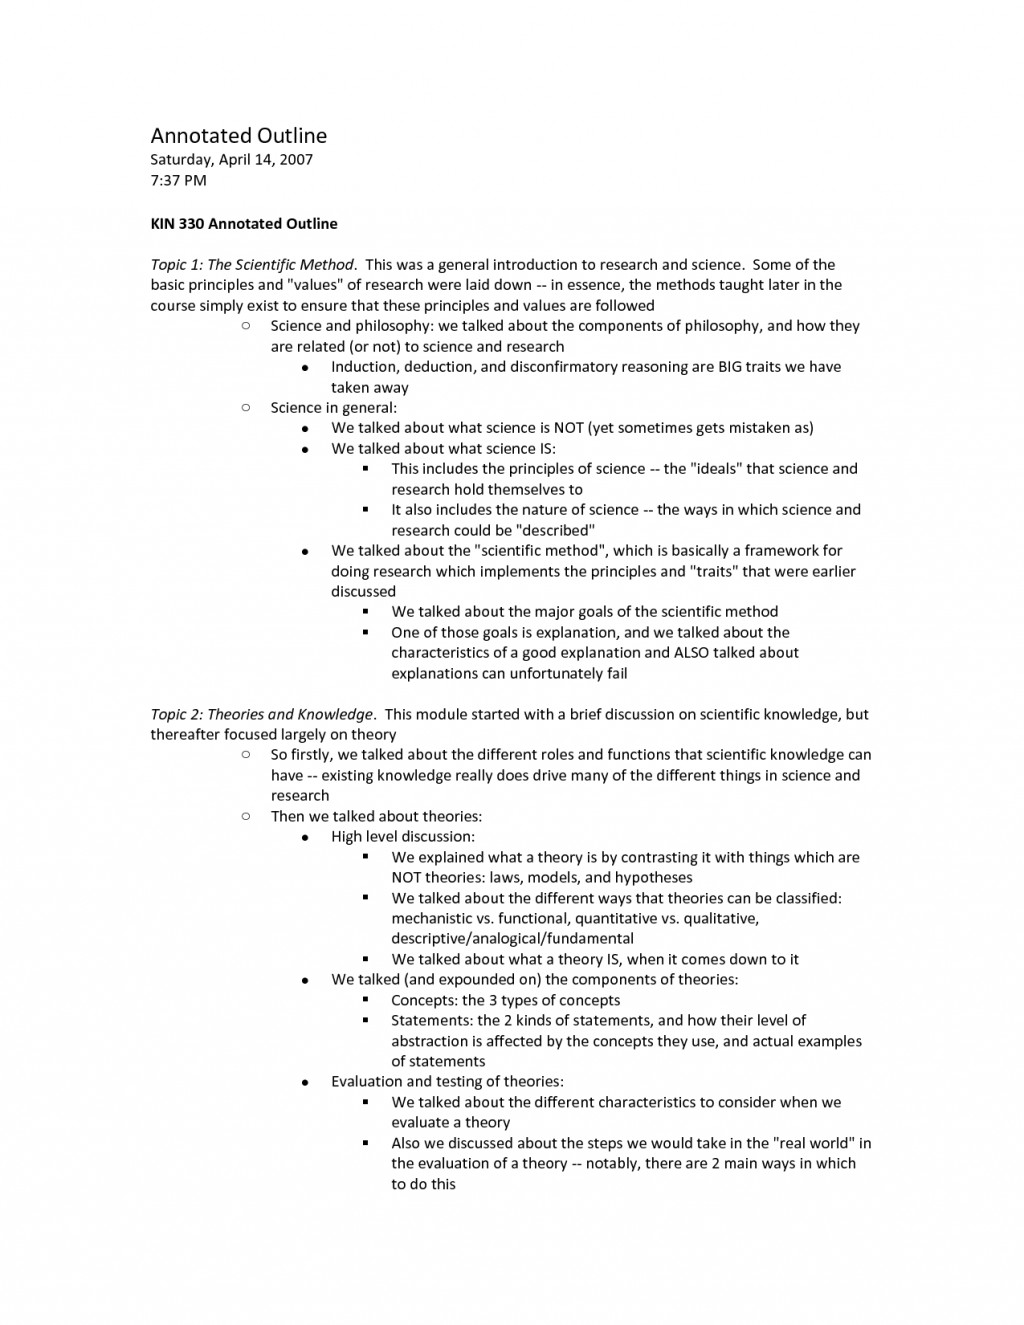 004 How To Write An Apa Outline For Research Paper Annotated 308696 Awful A Style Large